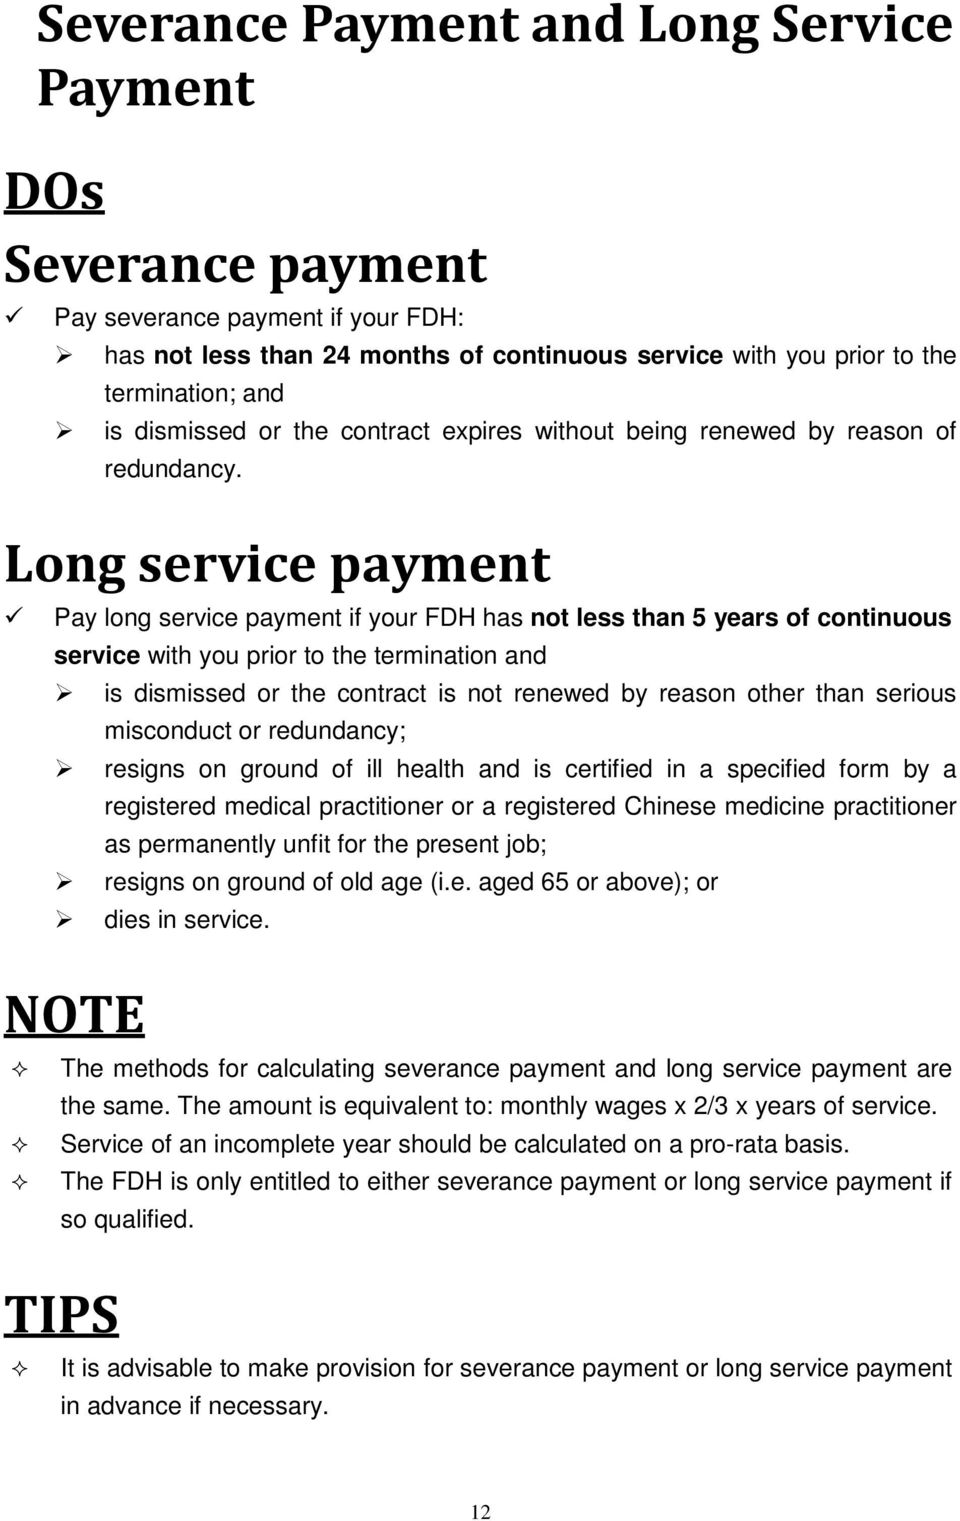 Long service payment Pay long service payment if your FDH has not less than 5 years of continuous service with you prior to the termination and is dismissed or the contract is not renewed by reason